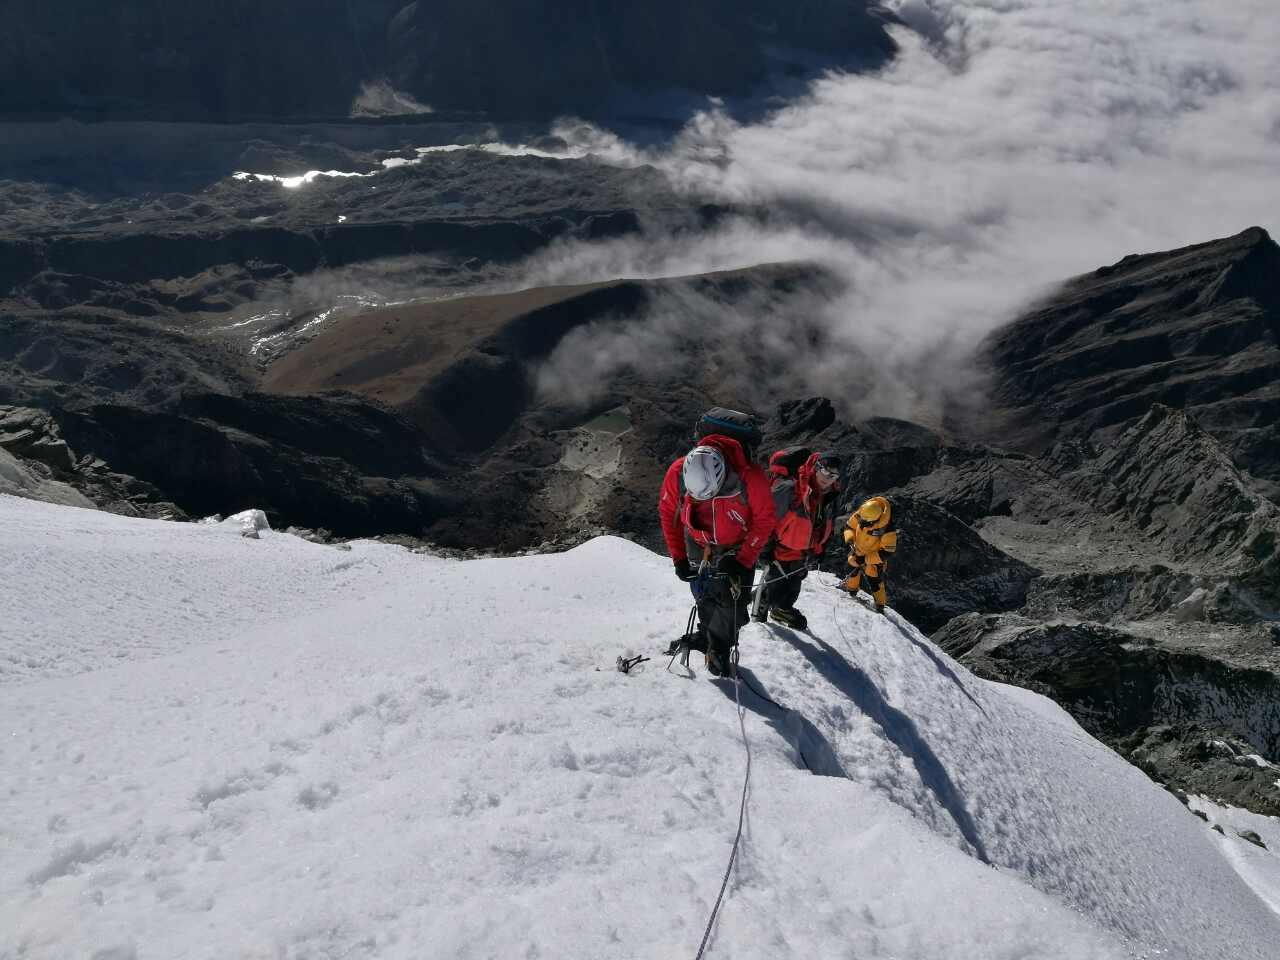 On the ridge of the Lobuche